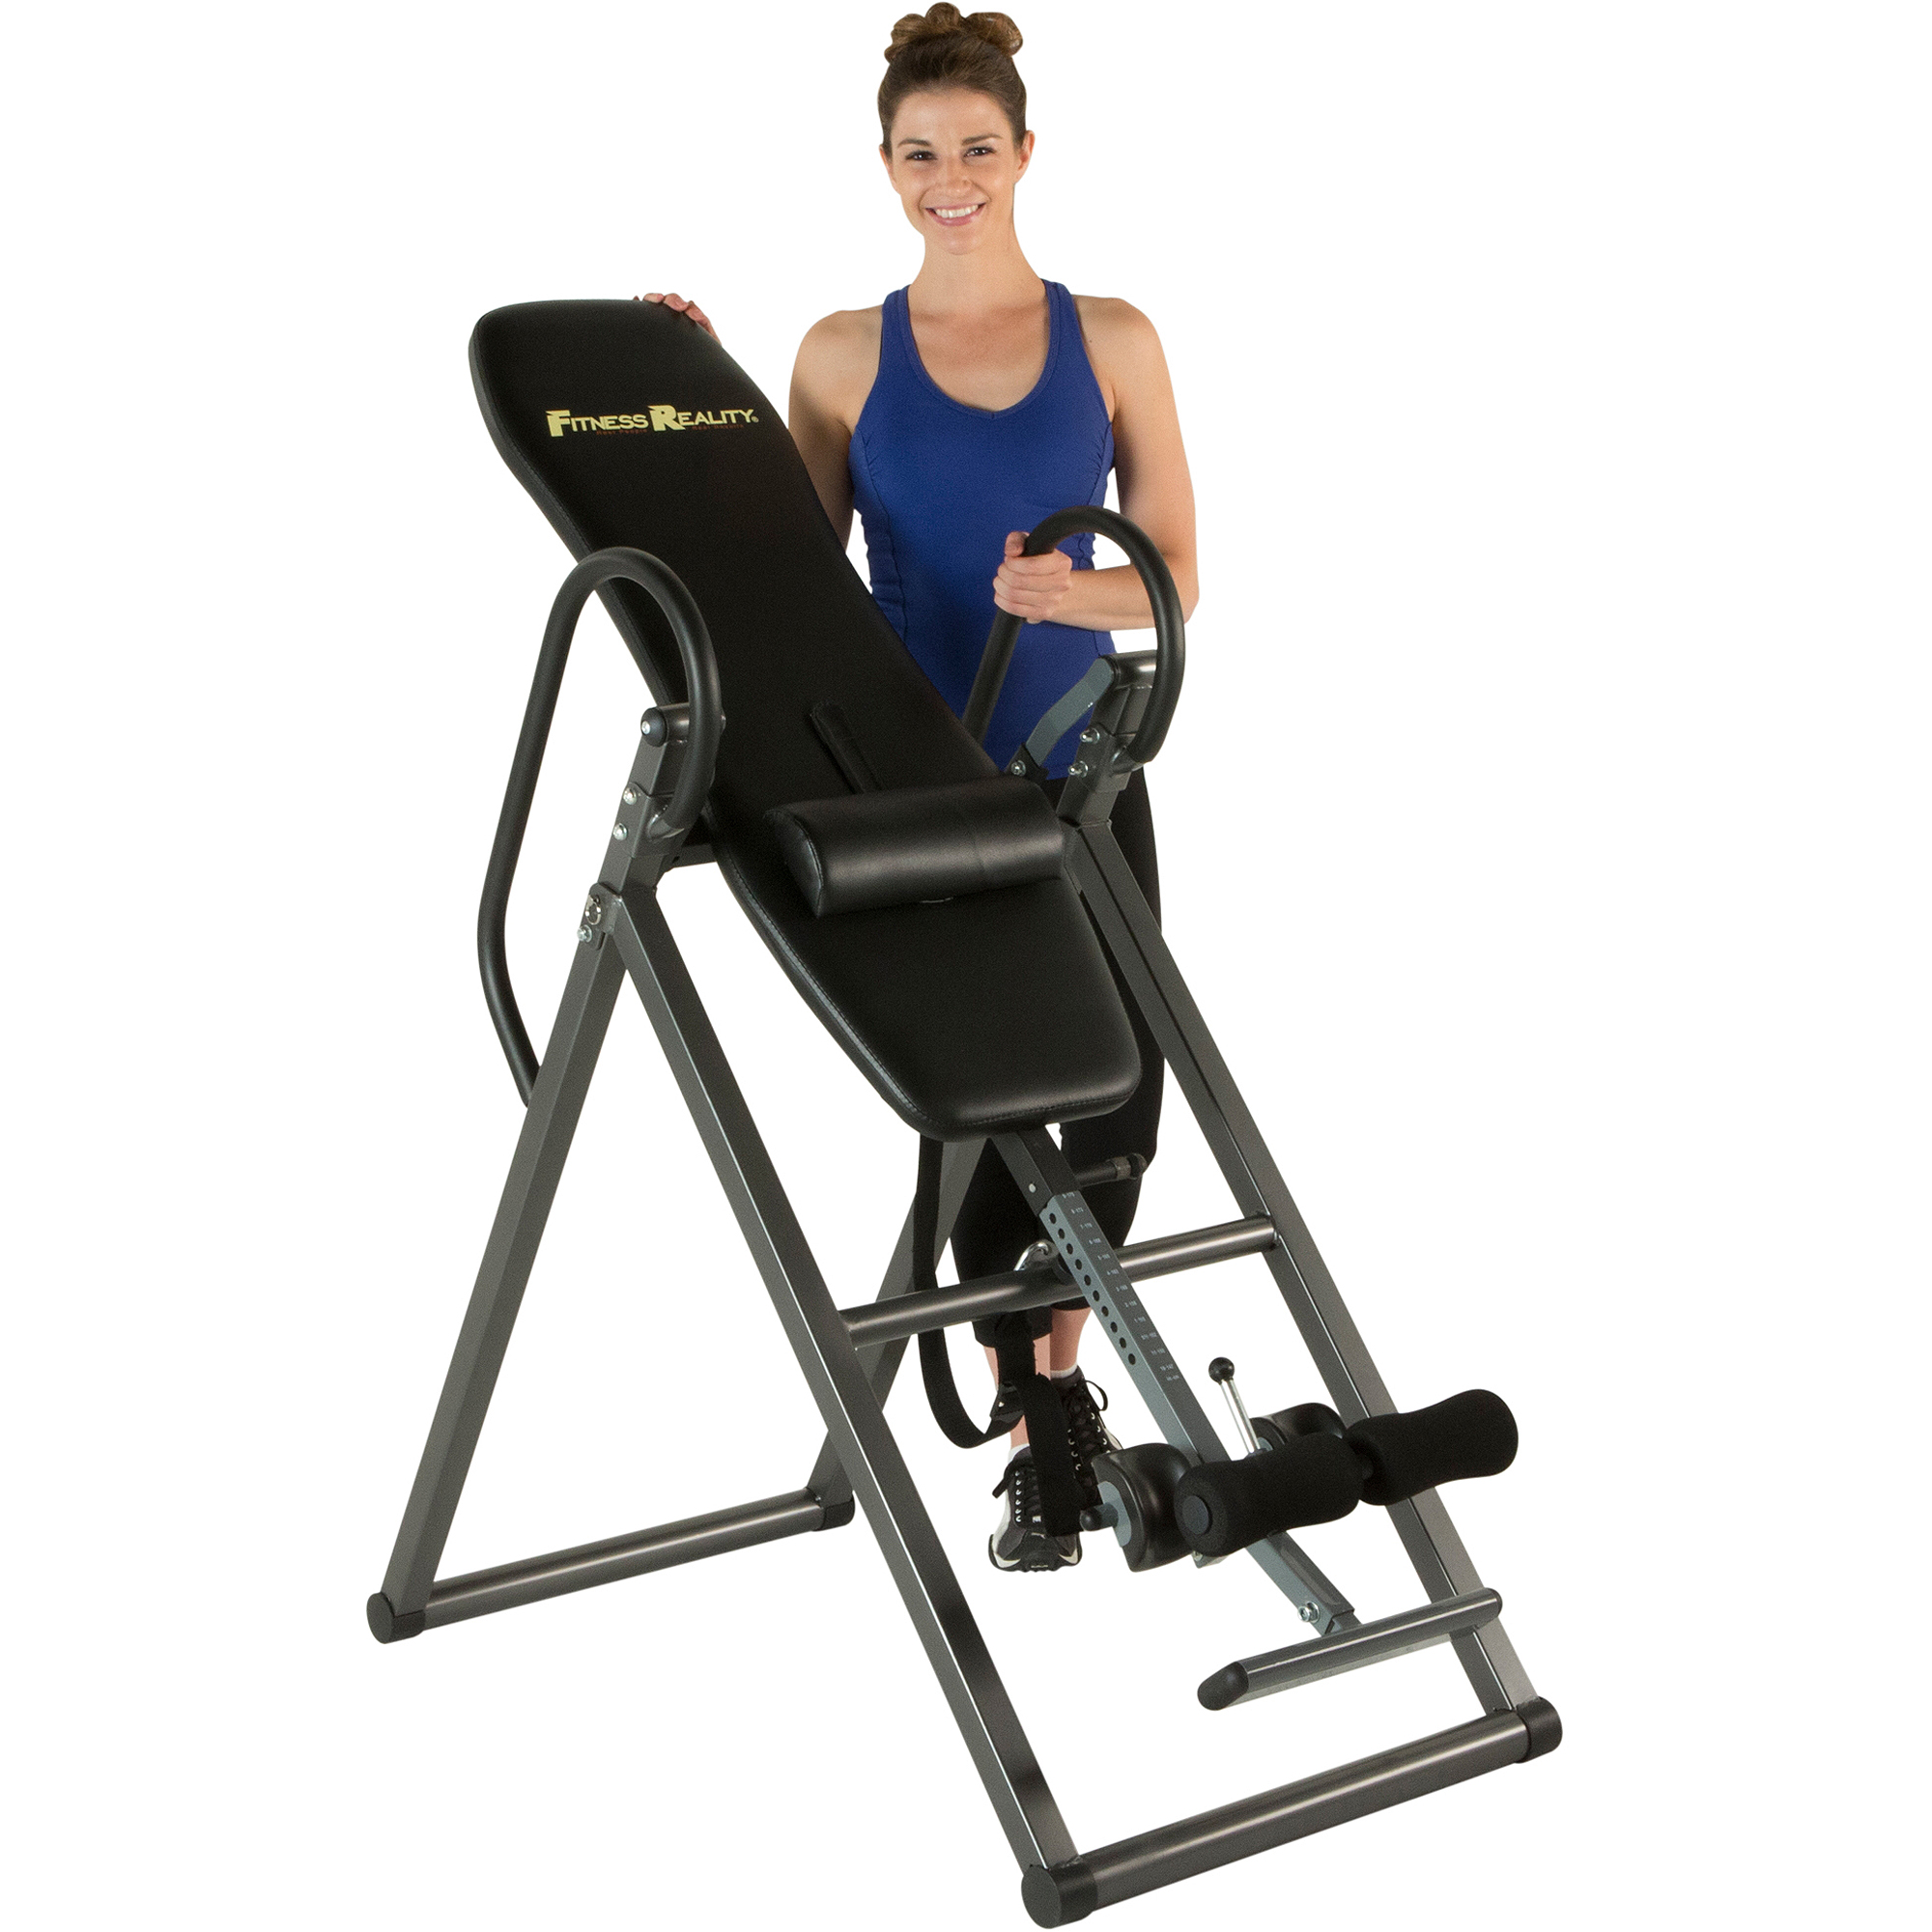 Fitness Reality 690XL Additional Weight Capacity Inversion Table with Lumbar Pillow